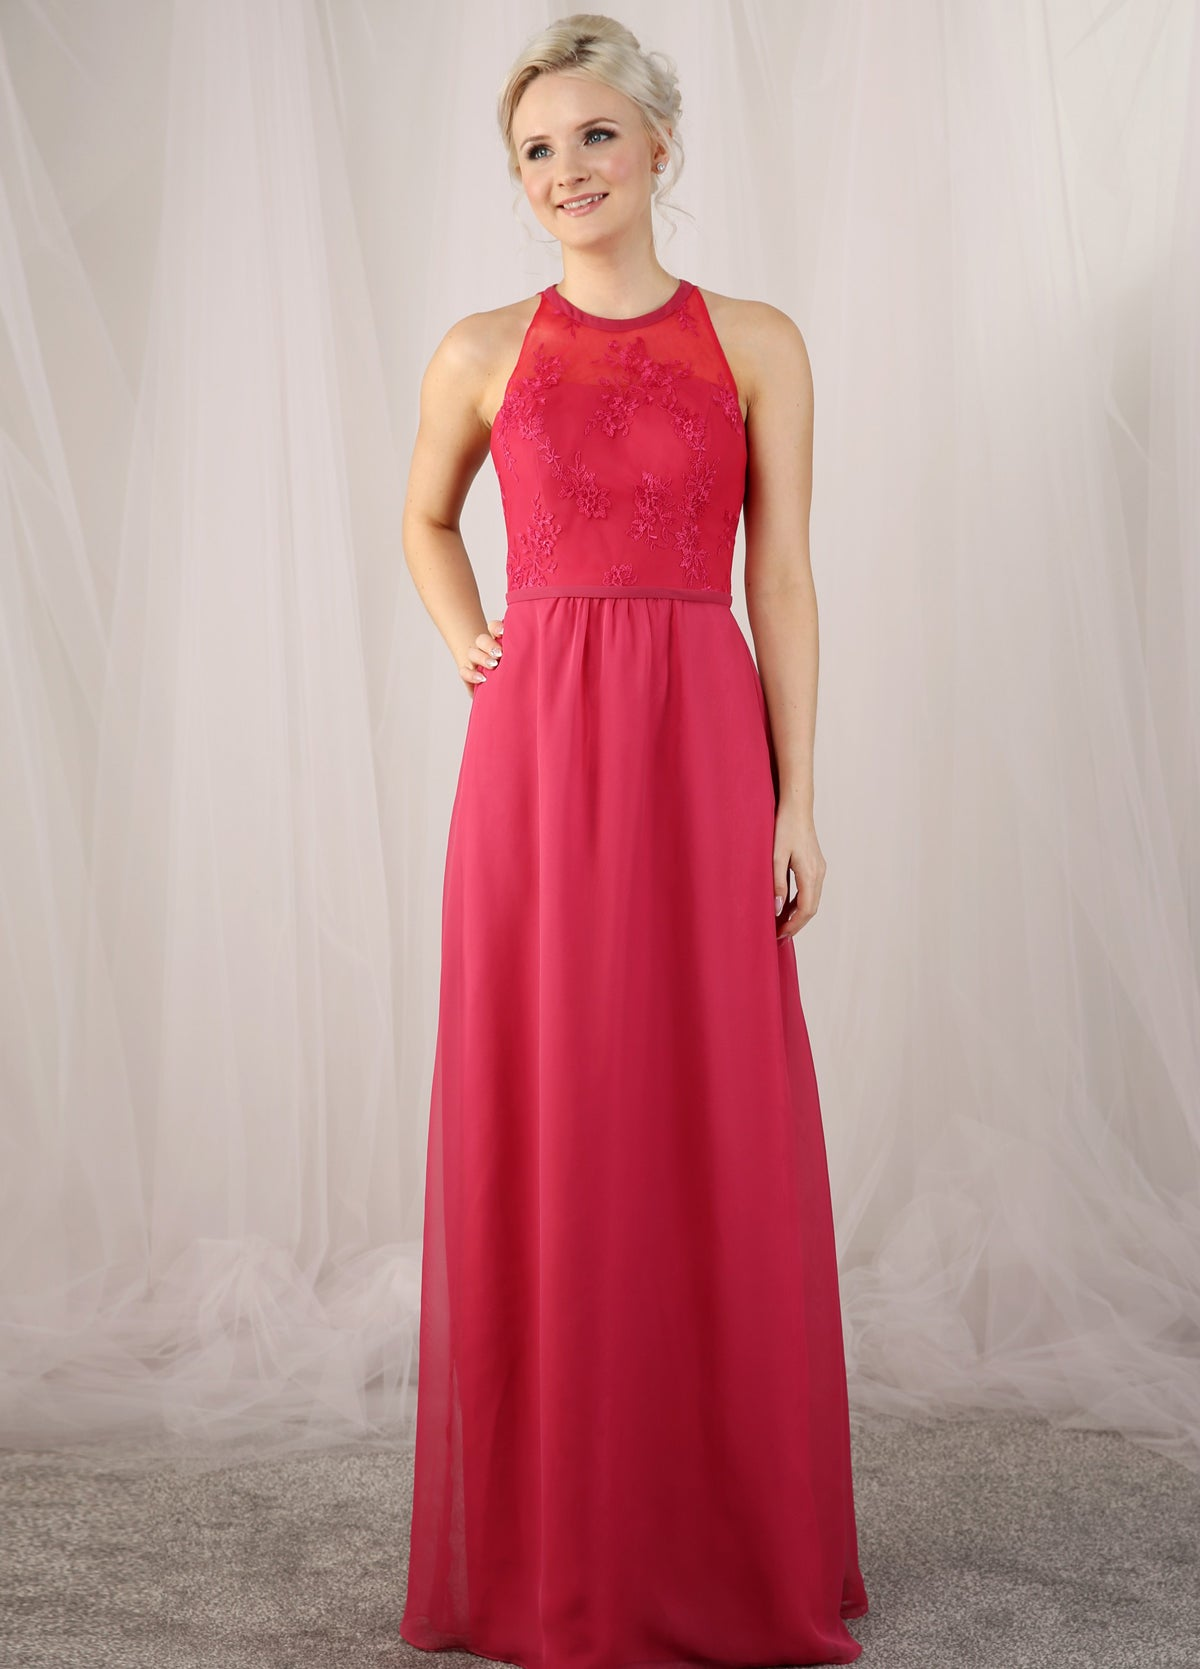 Chiffon bridesmaids dress with a lace bodice